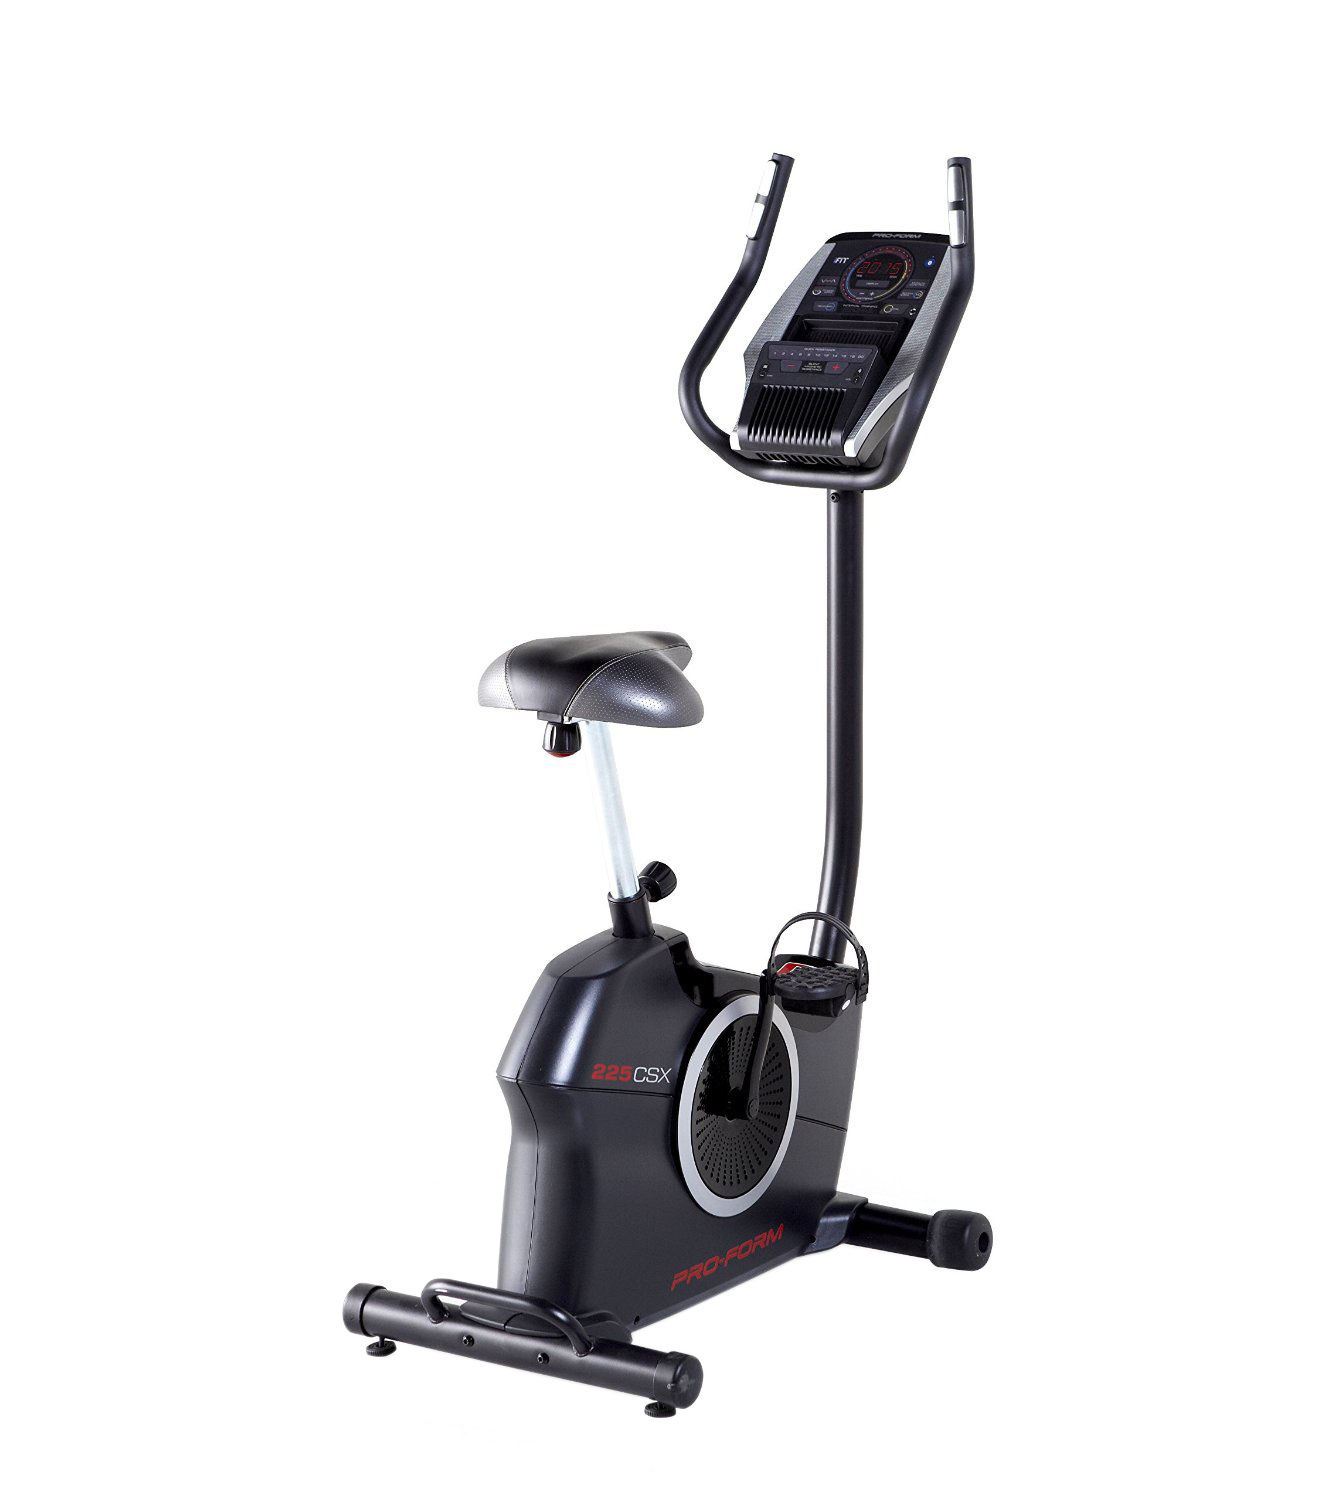 ProForm 225 CSX Exercise Bike Indoor Upright Cycle